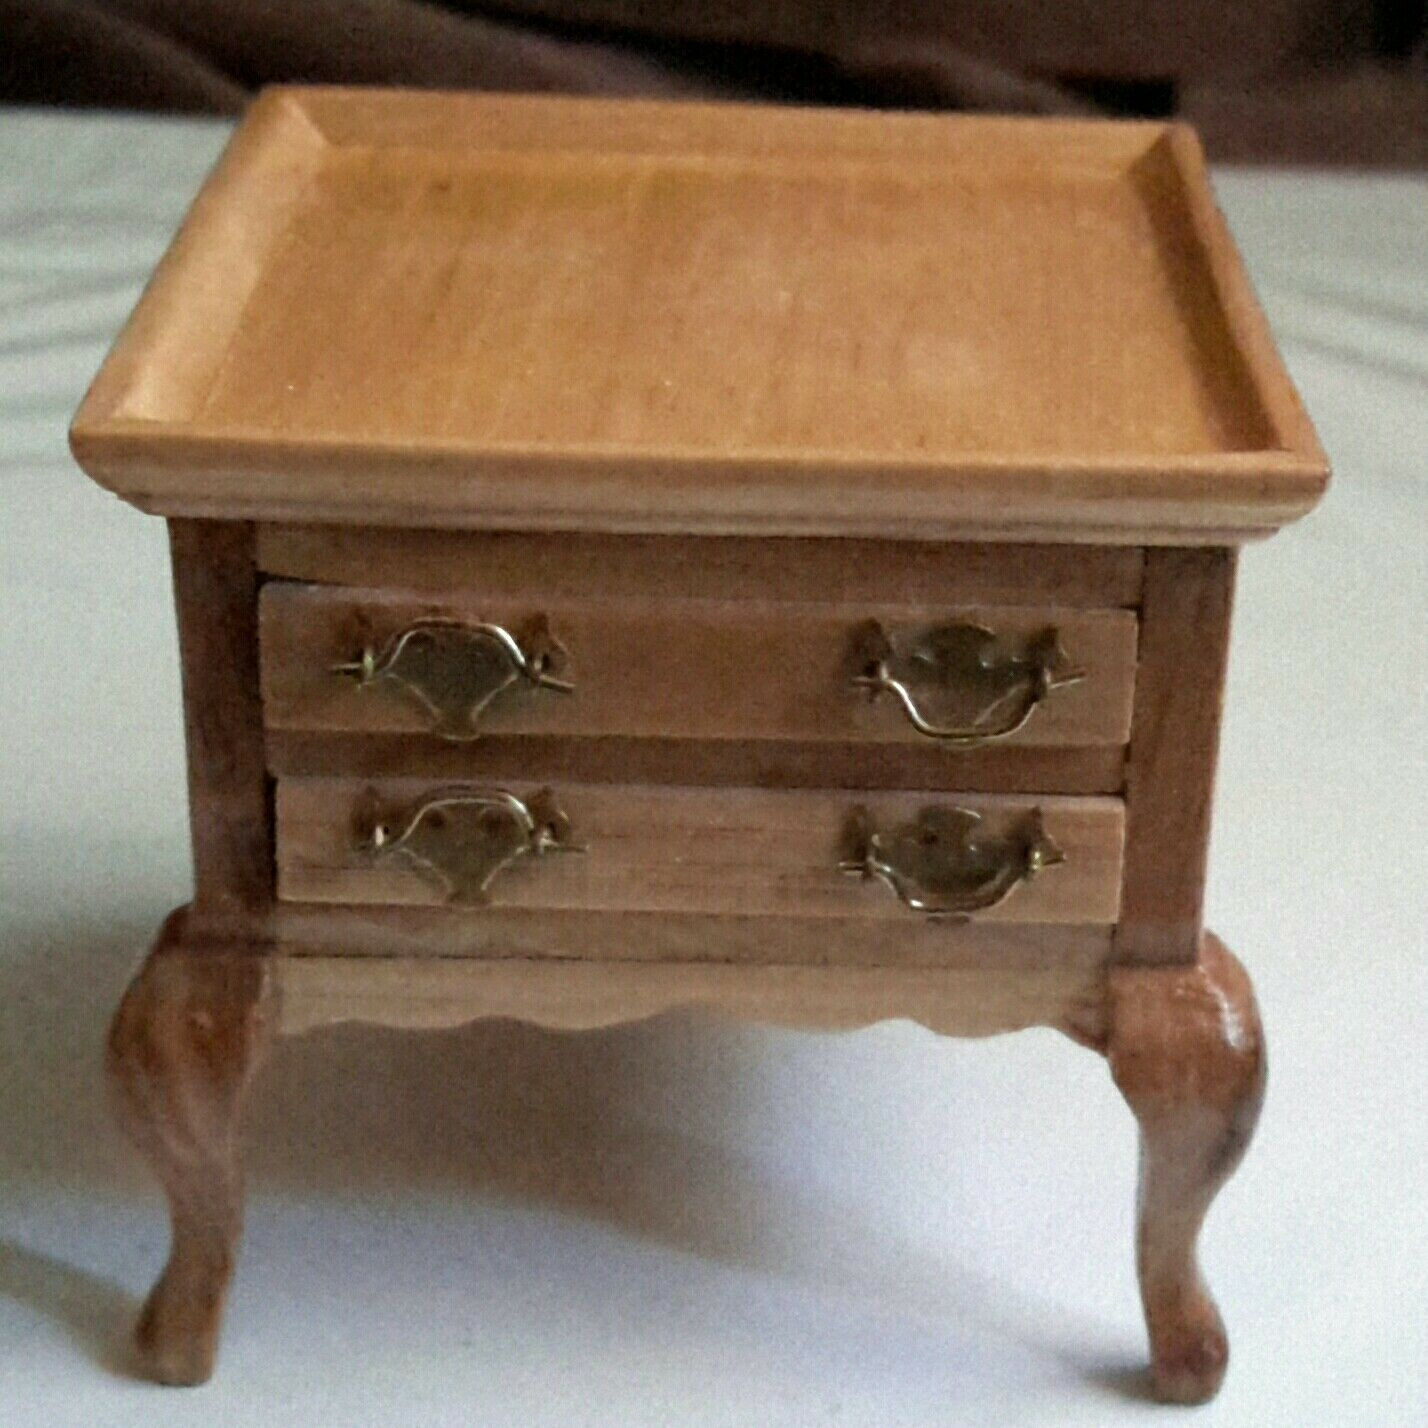 NEW Vintage Dollhouse Miniature END TABLE with DRAWERS By Fantastic  2005